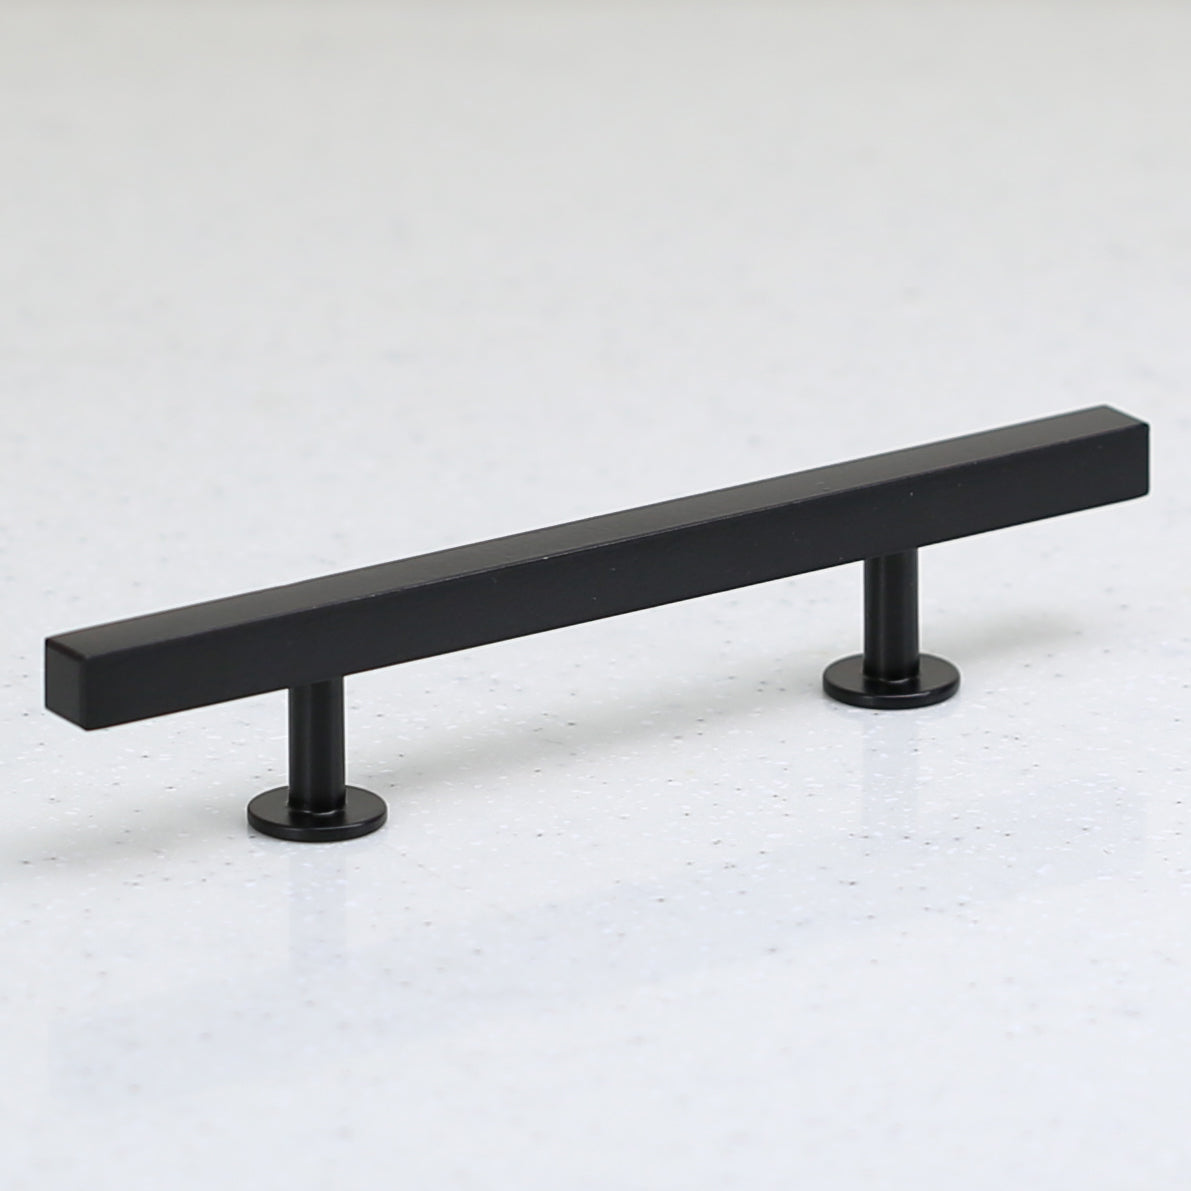 "The Vouvant Collection Pull - 96mm Center to Center (3-3/4"") - Matte Black - Handle Pull Decorative Hardware"